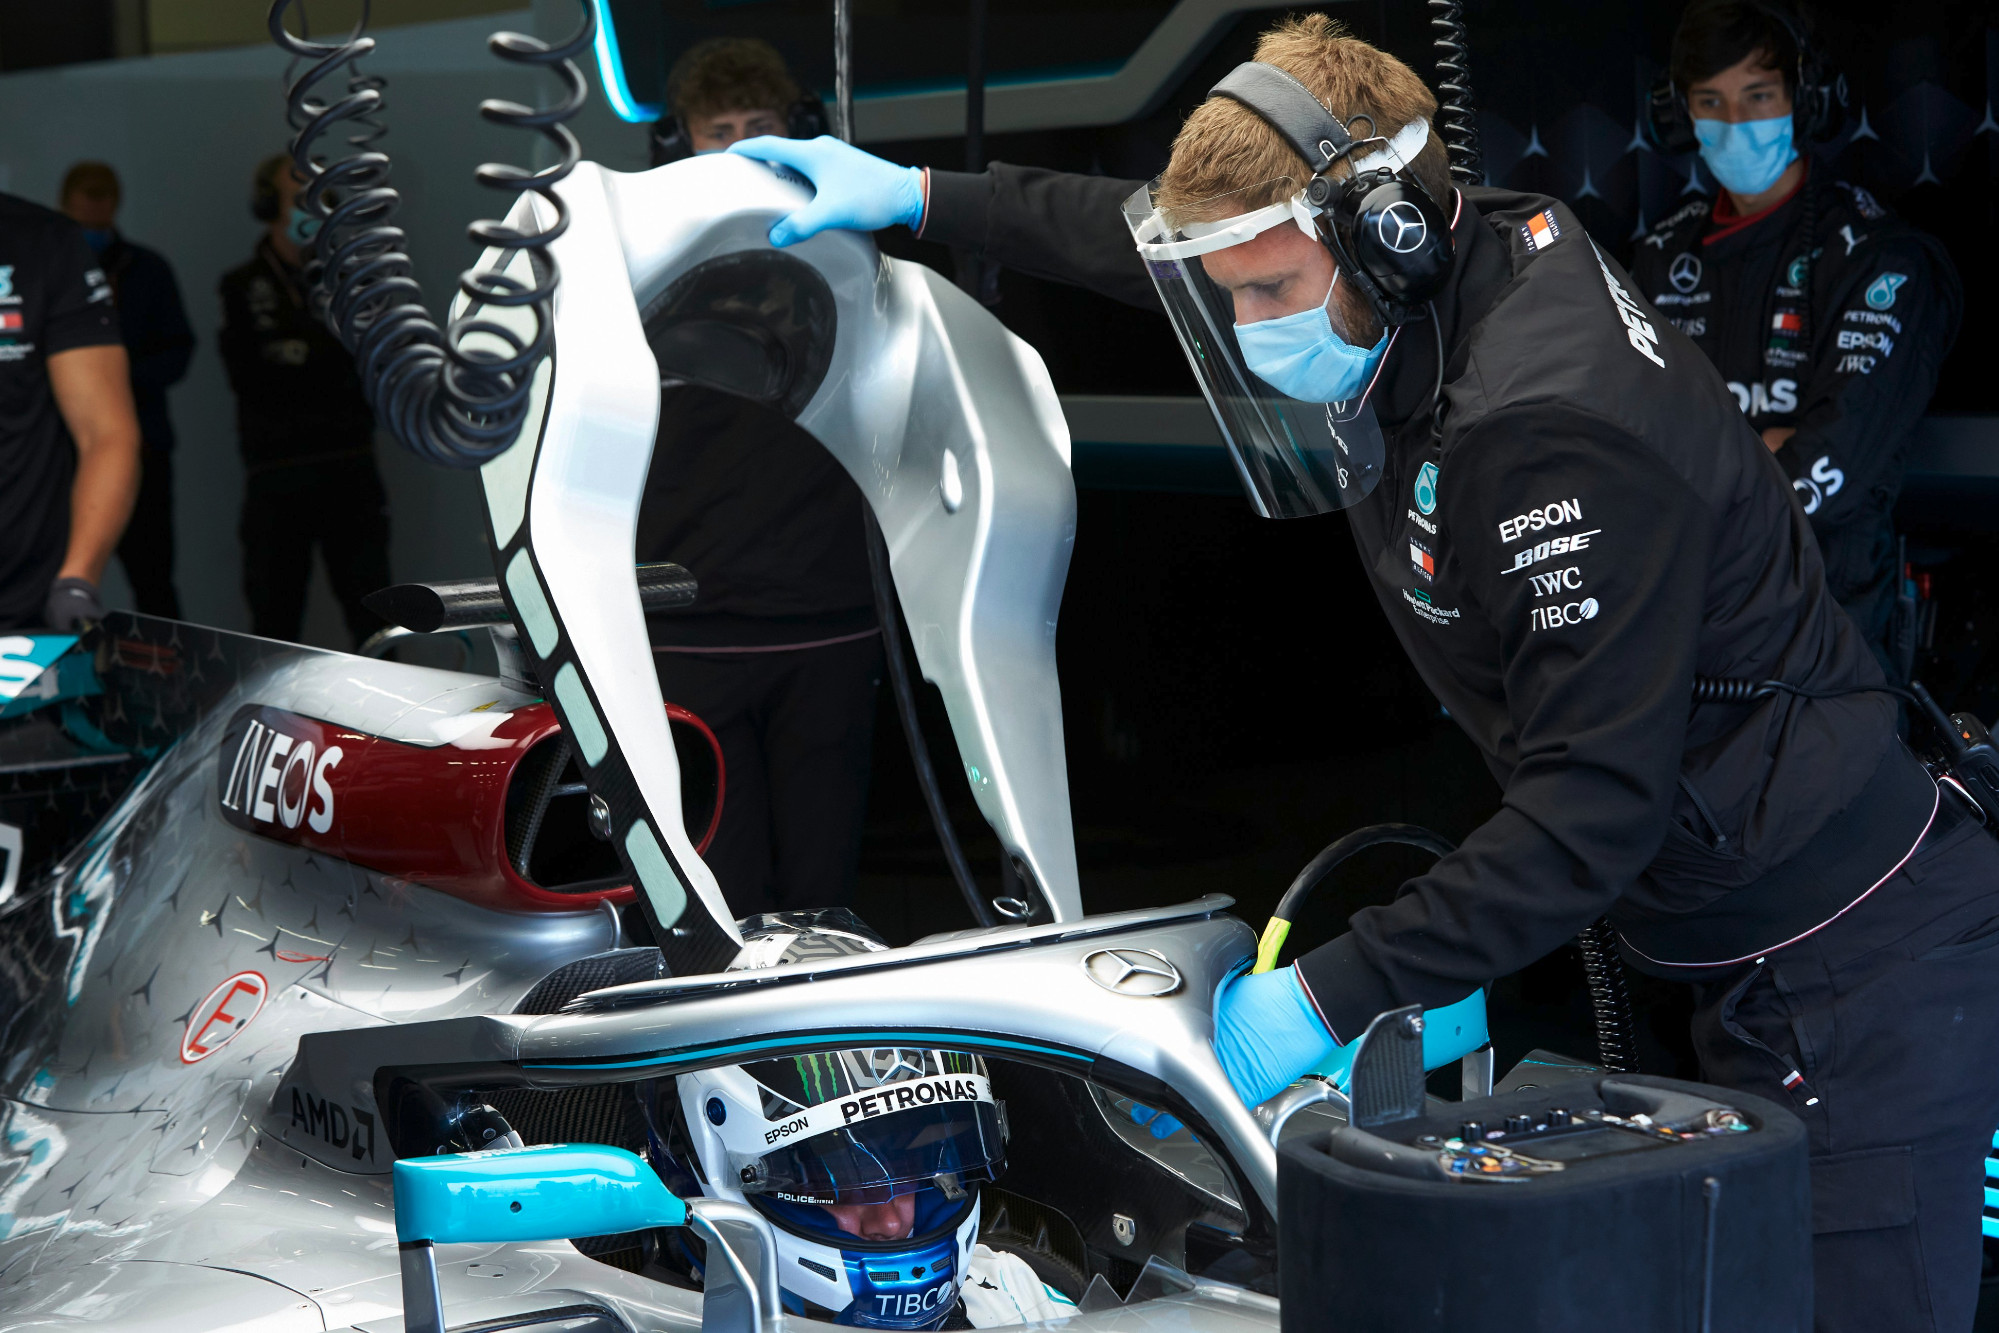 Mercedes begins F1 testing at Silverstone with Covid-19 safety measures